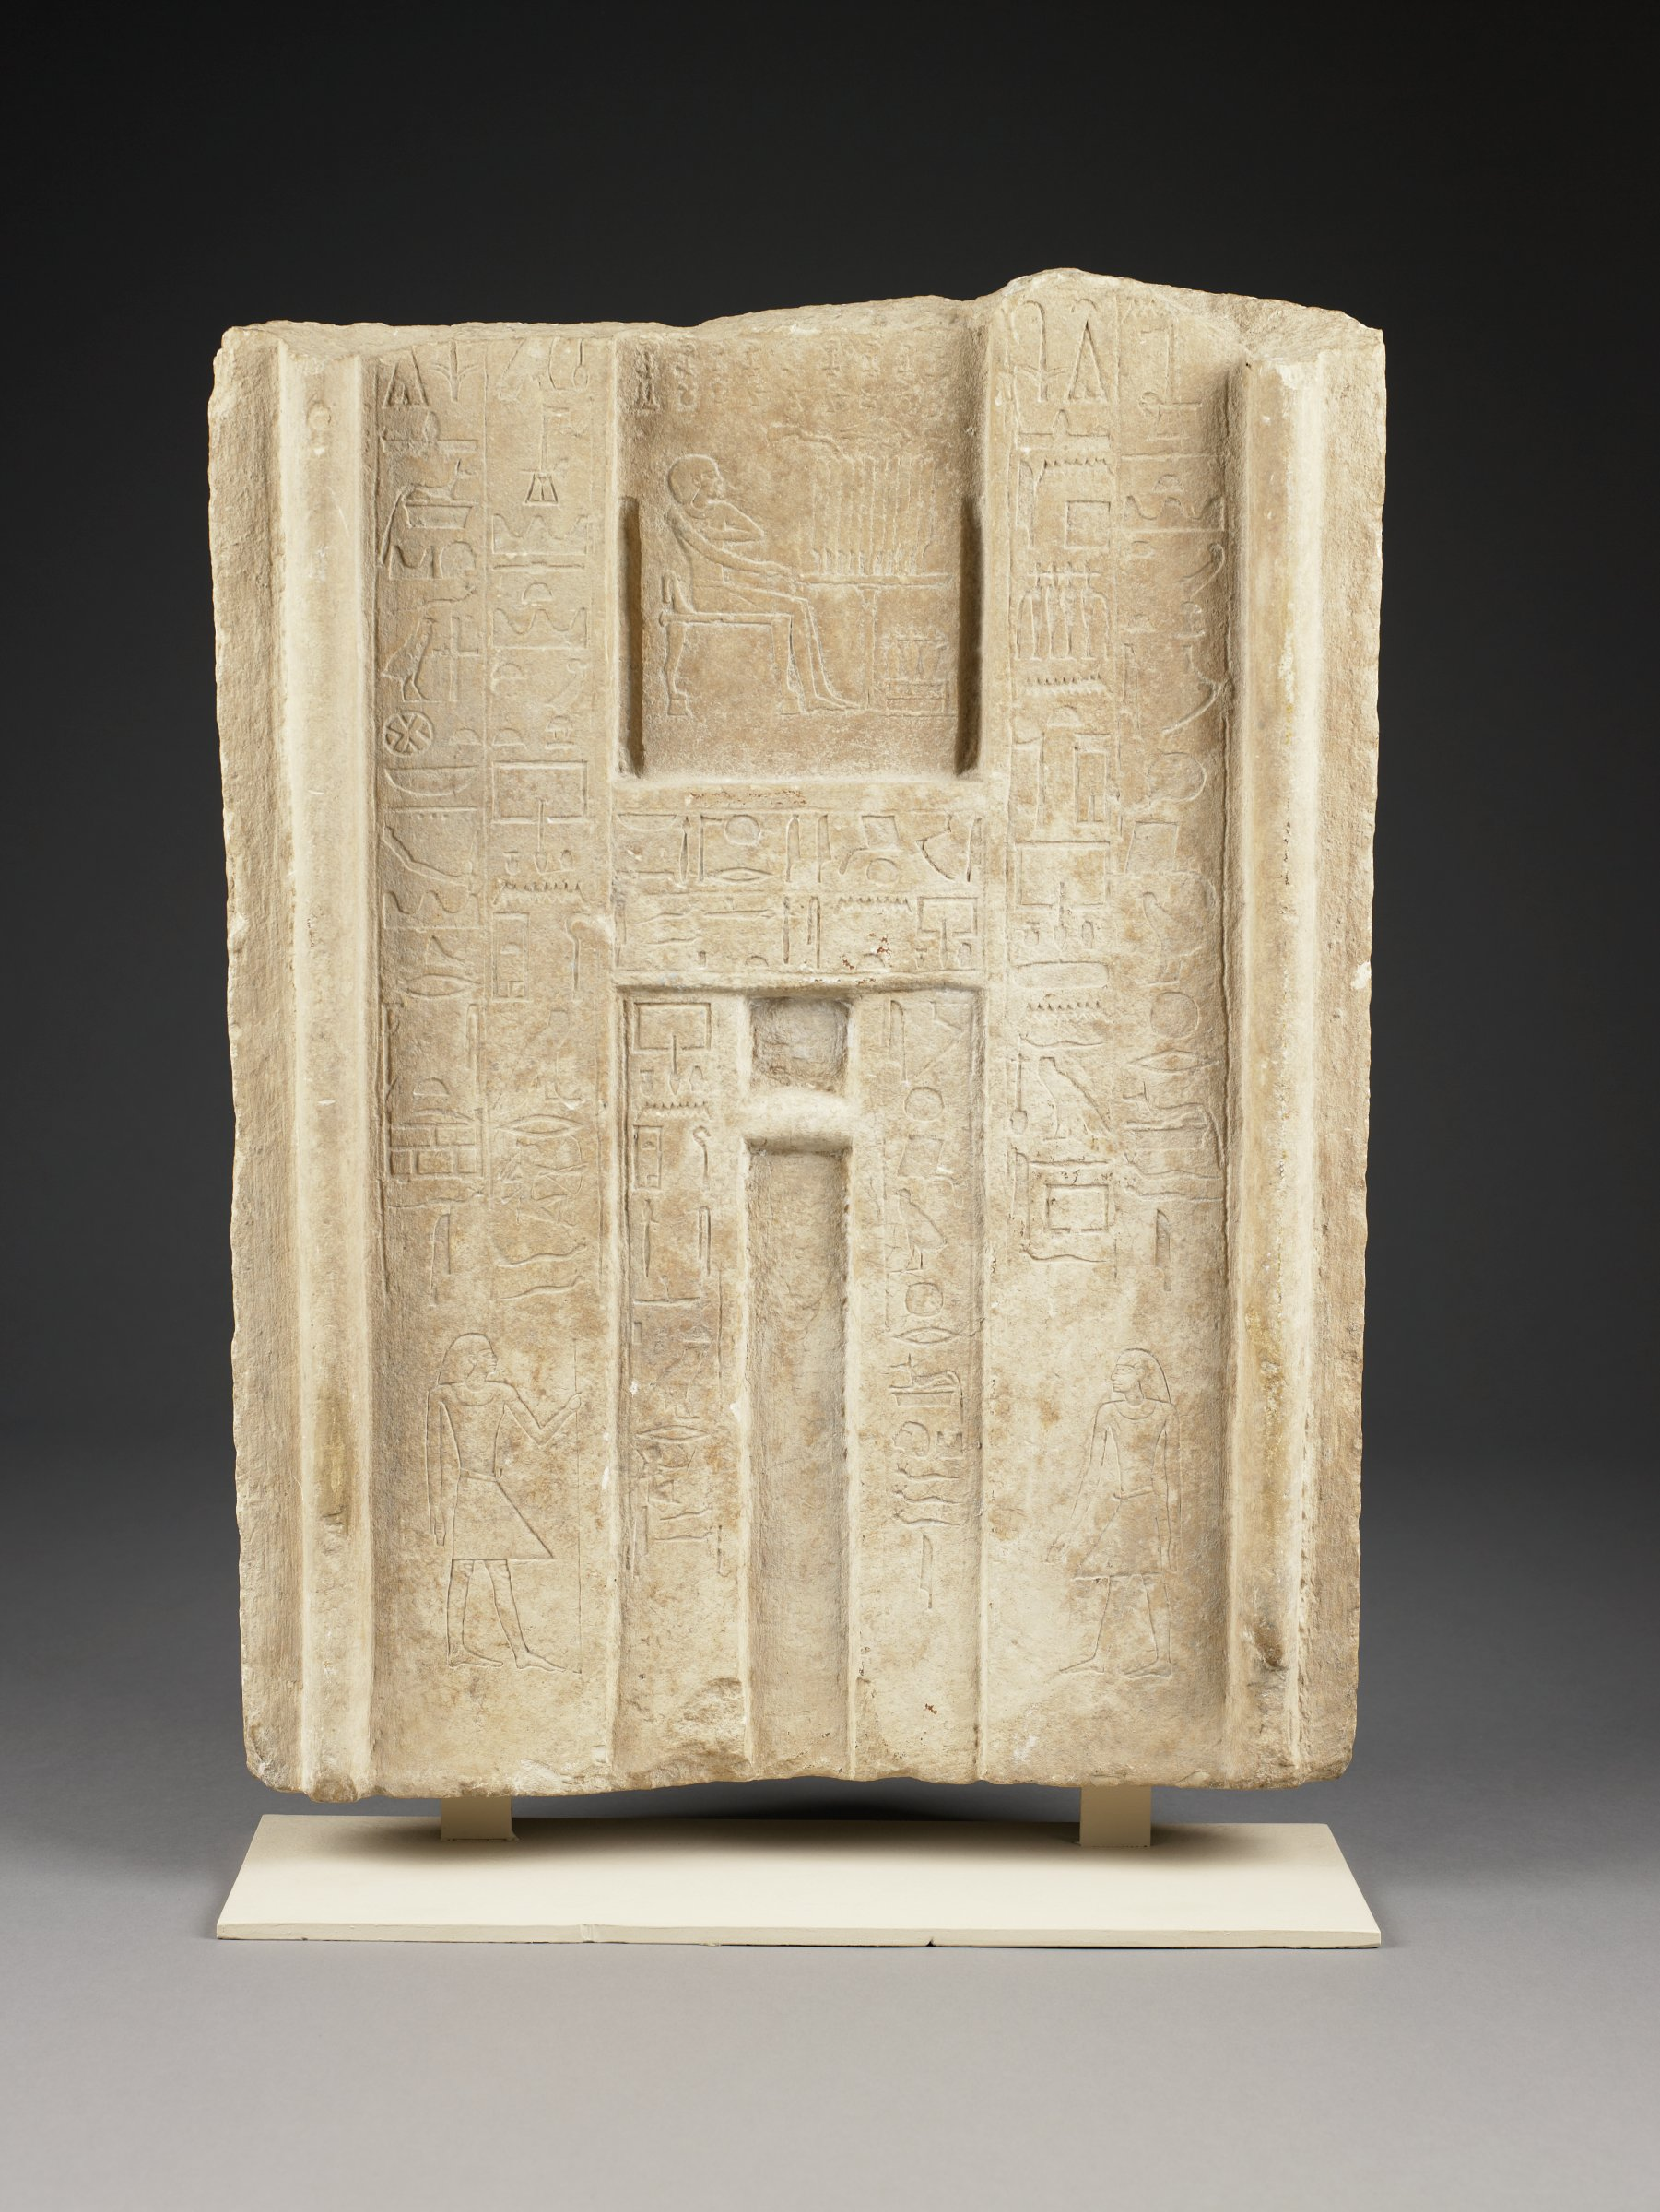 Limestone slab with relief carving representing a doorway; also hieroglyphic inscriptions and image of man identified as General Fefi seated before a table.